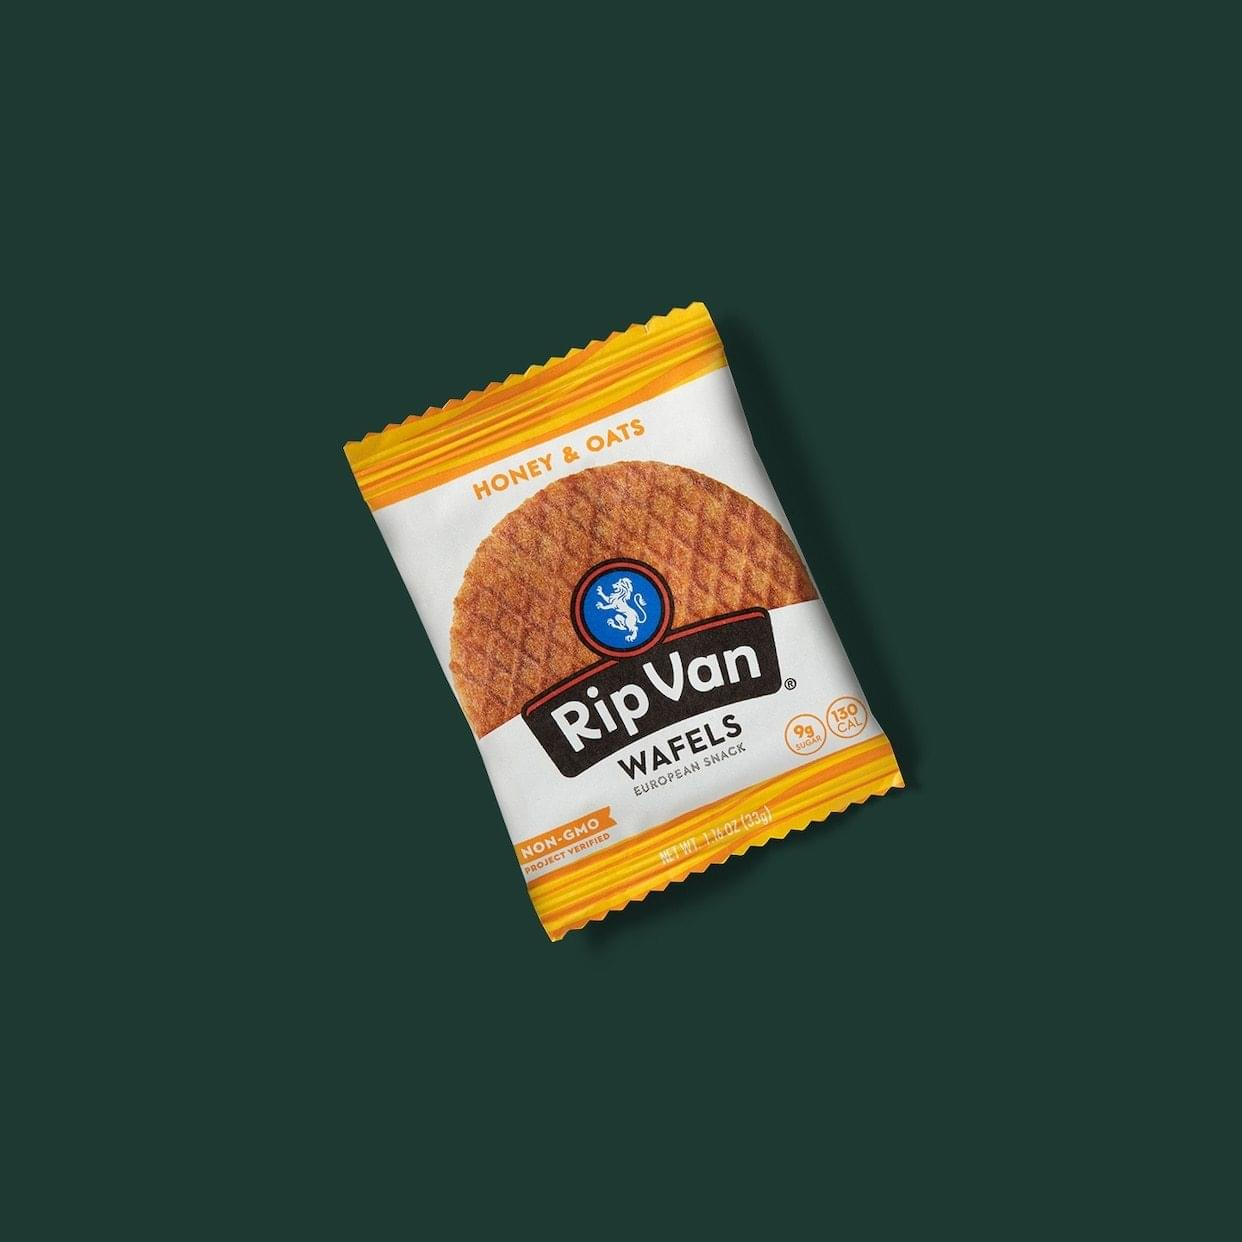 Starbucks Rip van Wafels Honey & Oats Nutrition Facts